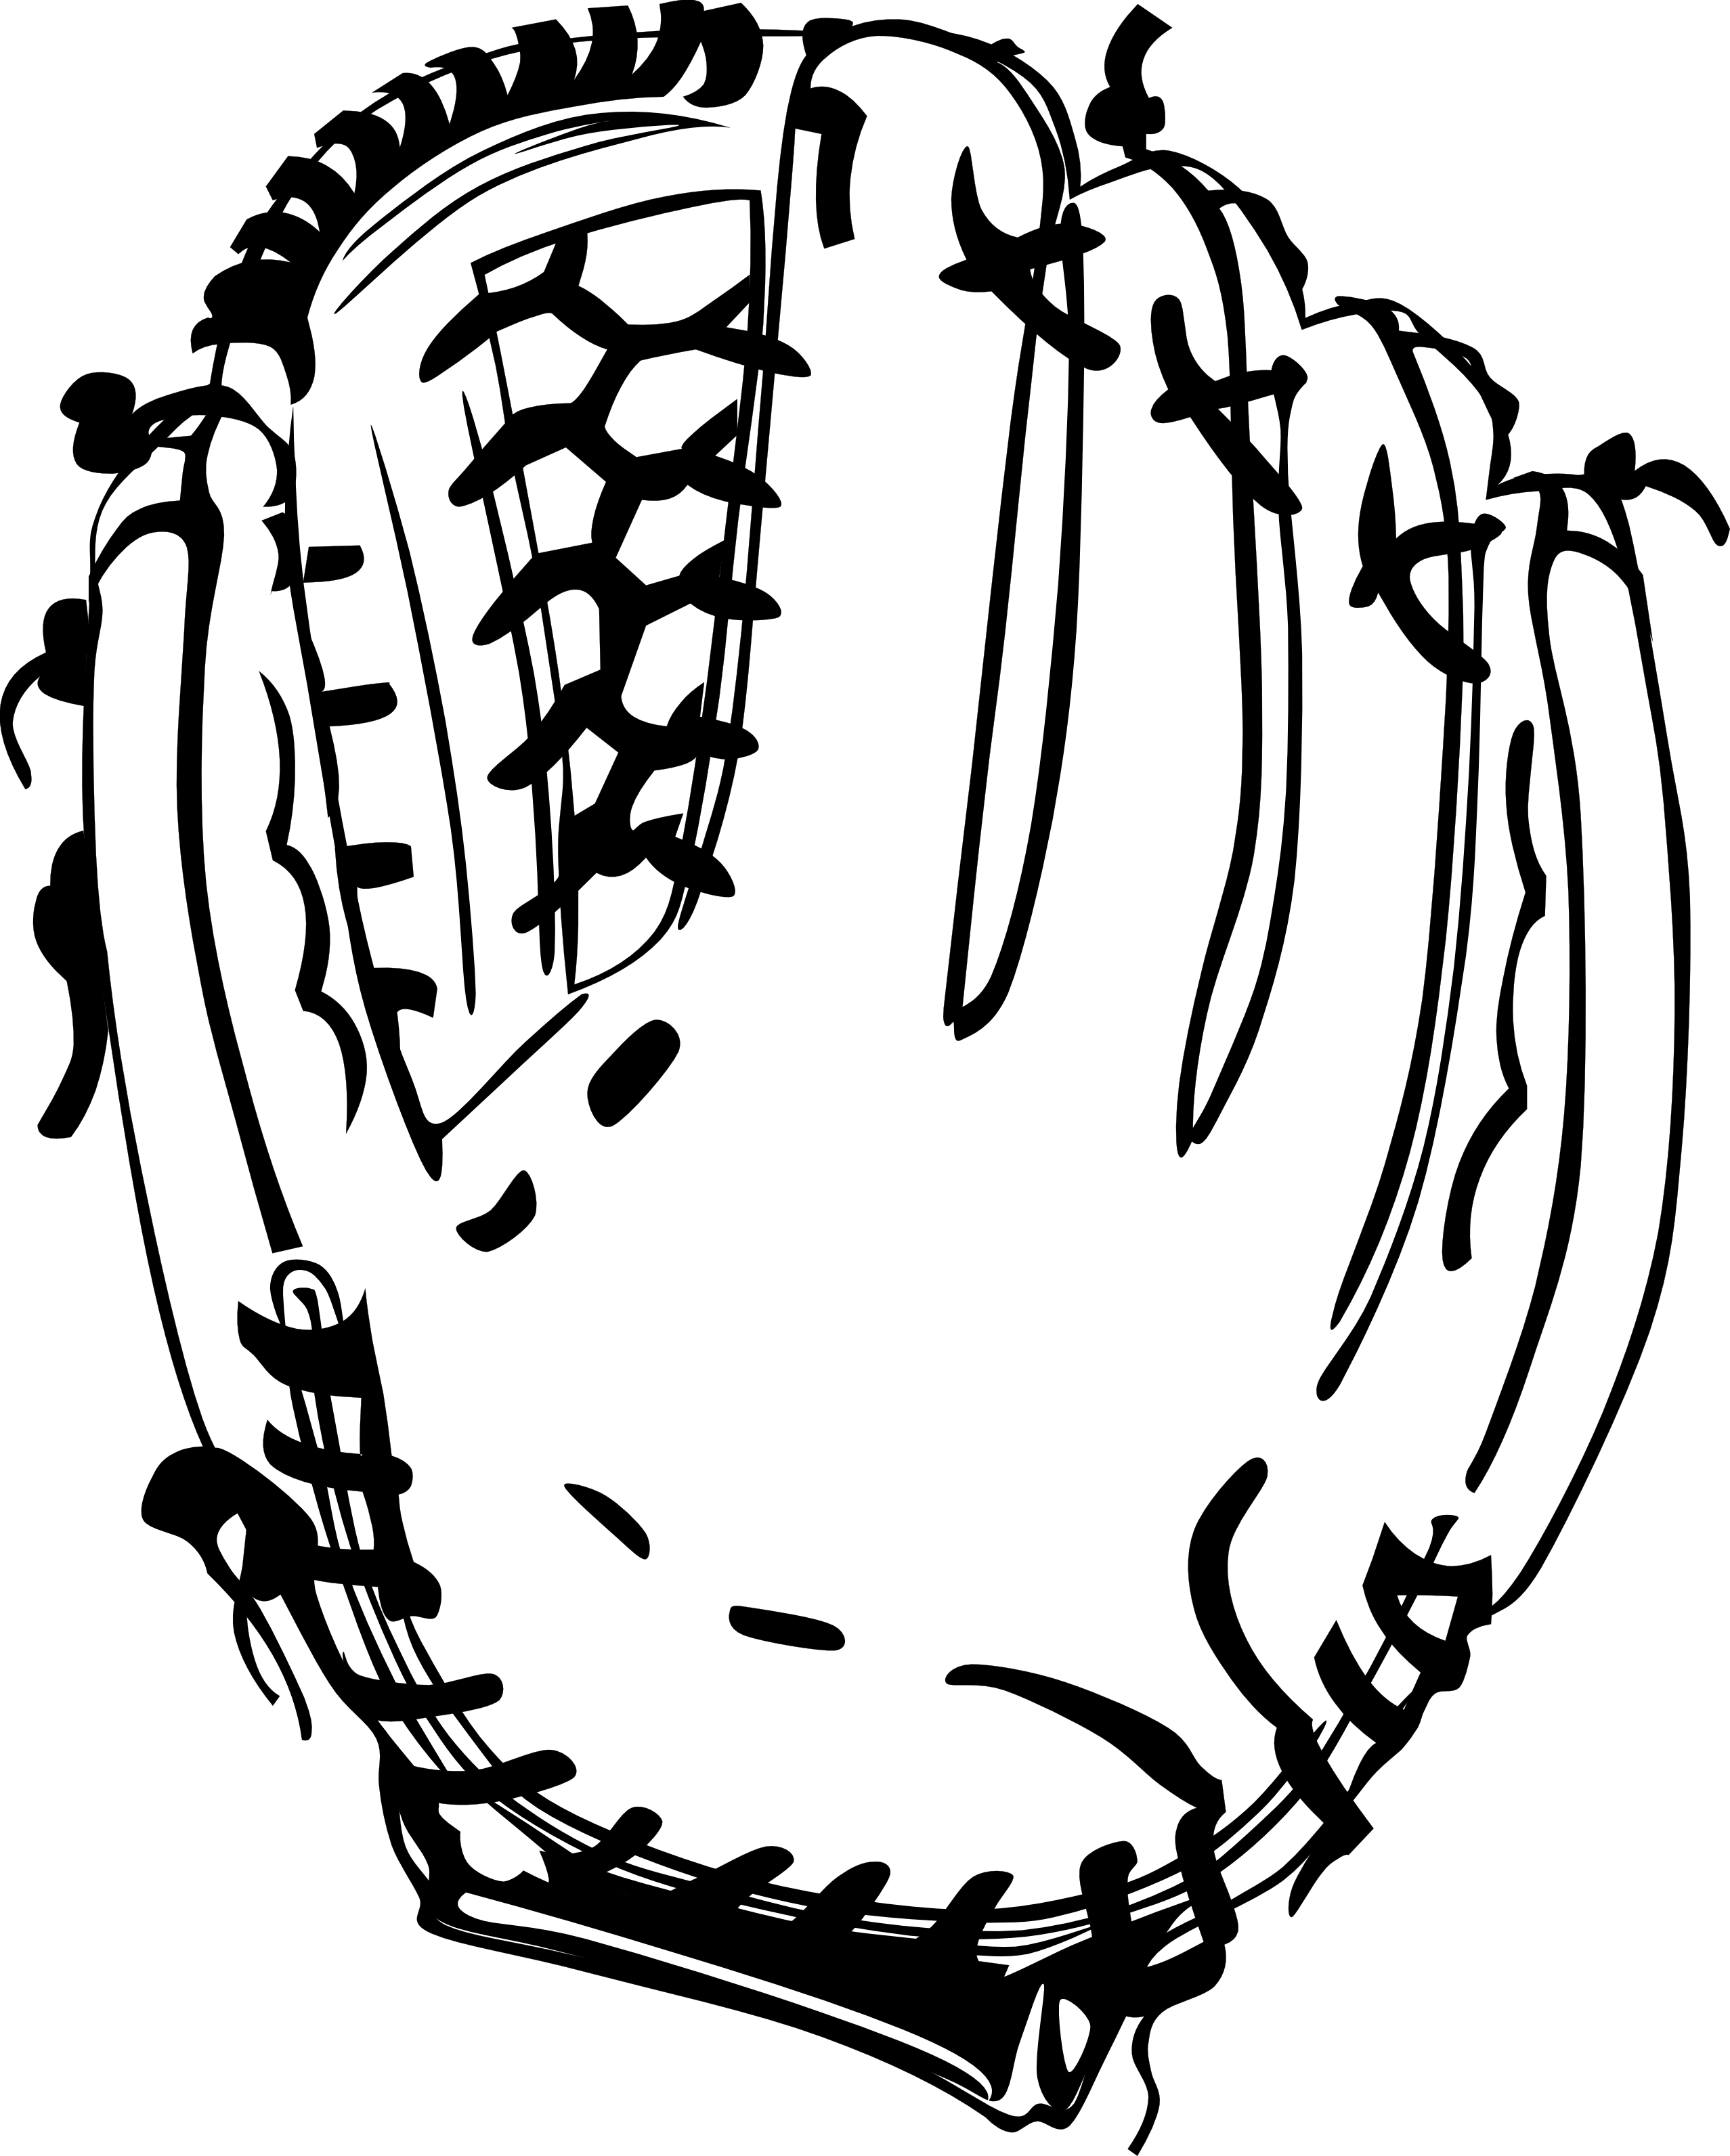 Baseball clipart catch png stock Baseball Clipart Black And White | Clipart Panda - Free Clipart Images png stock